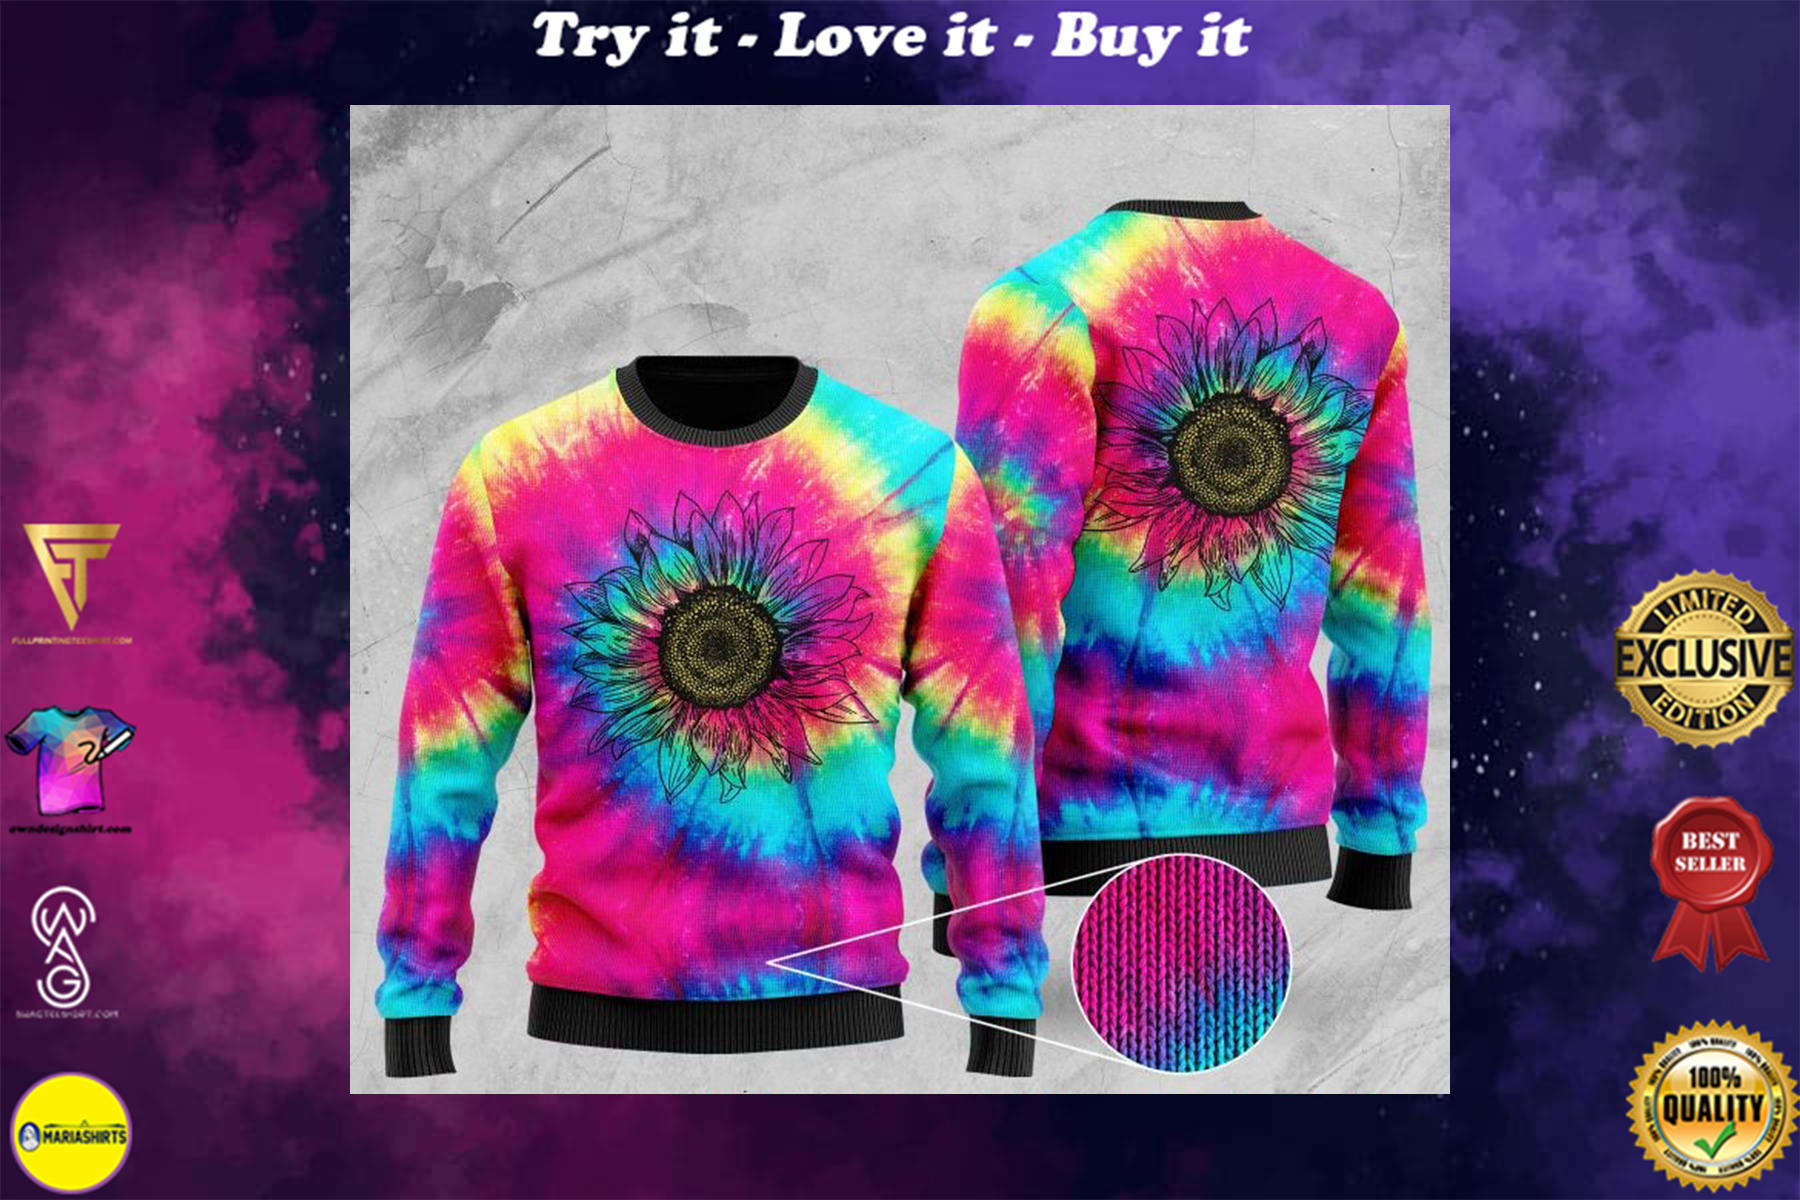 [special edition] hipppie sunflower tie-dye full printing ugly sweater - maria